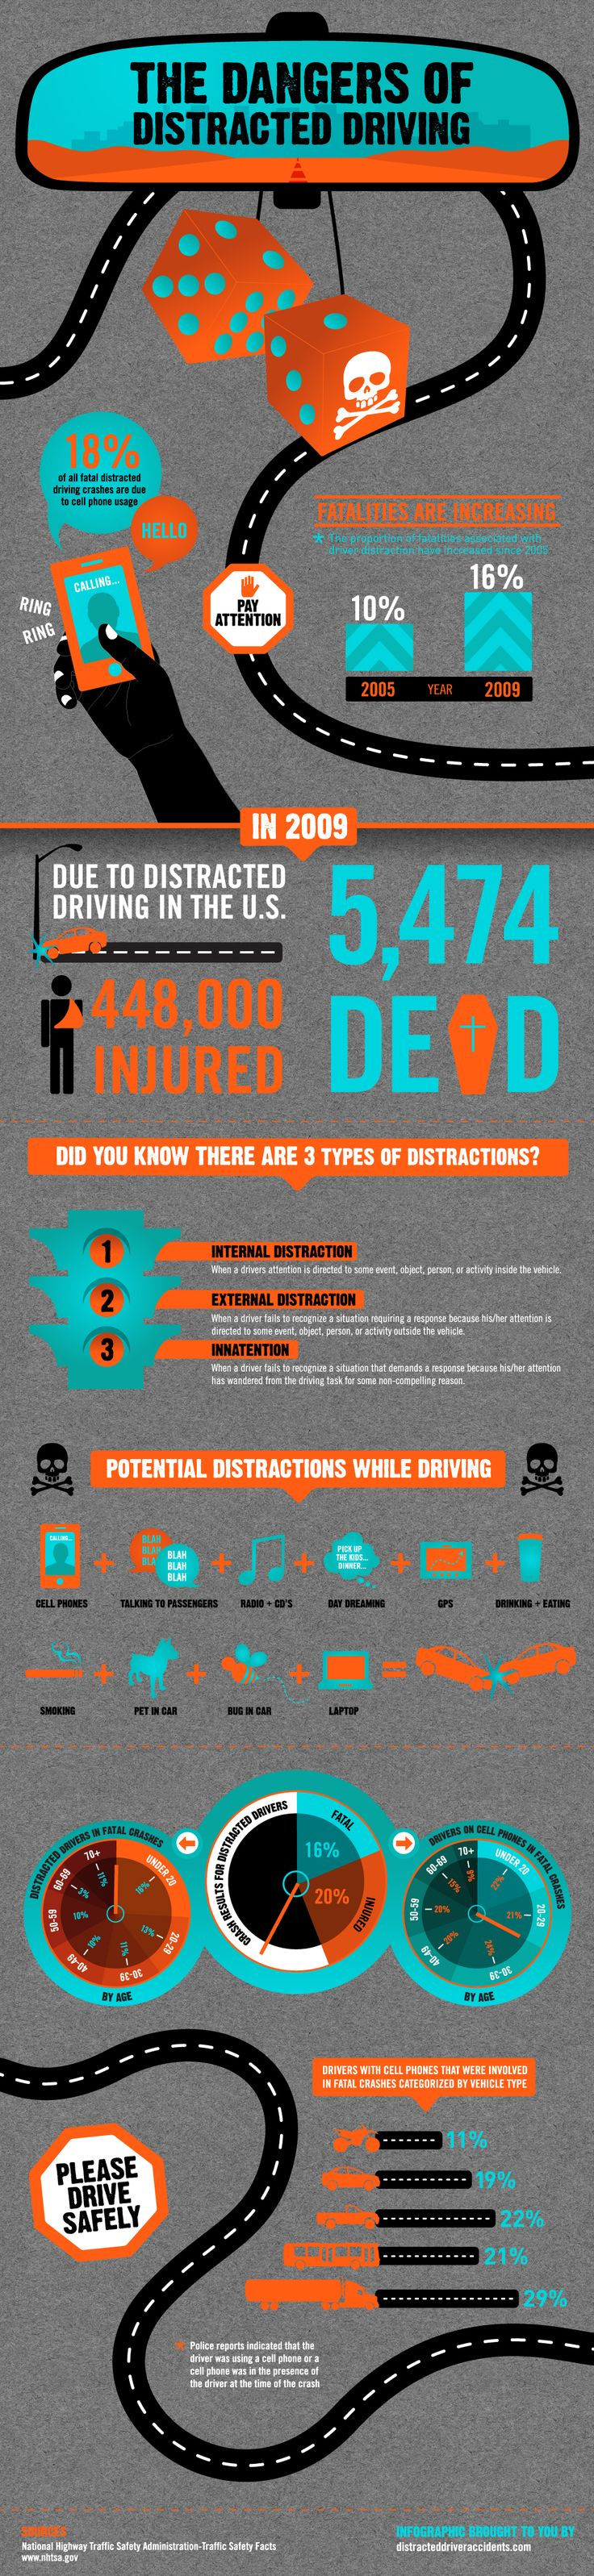 Driving safety tips every driver should know